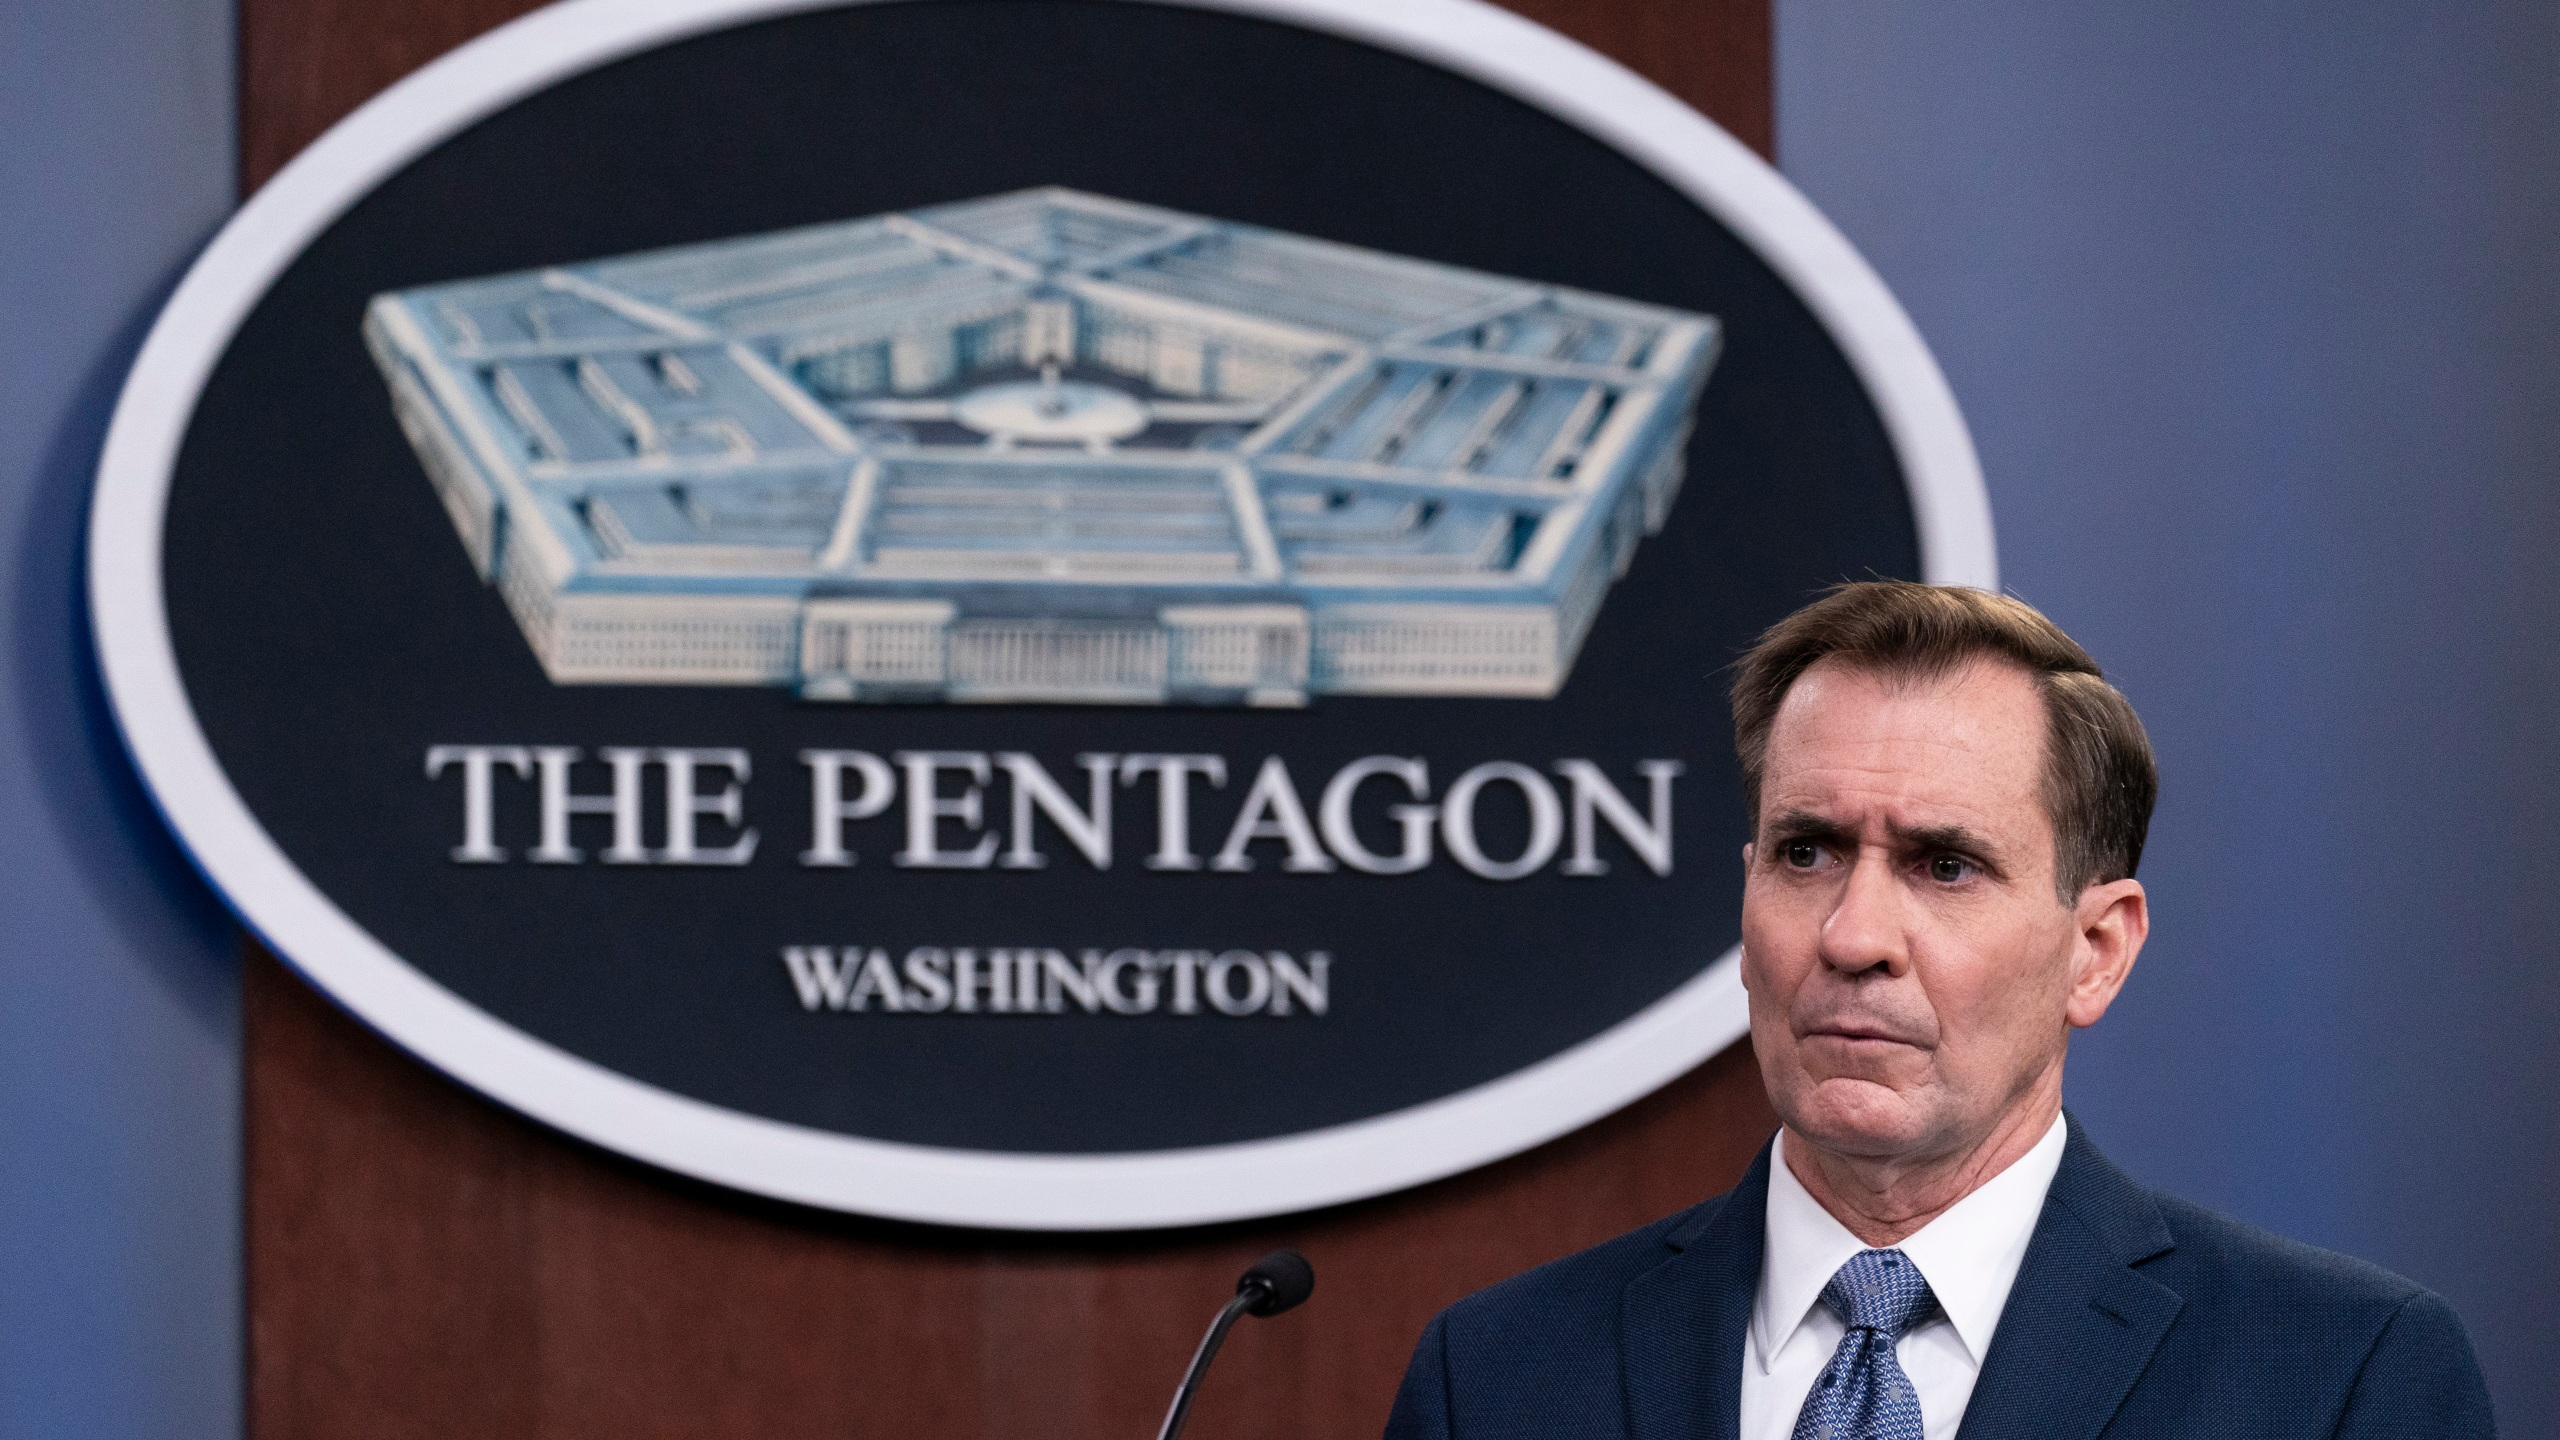 In this Wednesday, Feb. 17, 2021, file photo, Pentagon spokesman John Kirby speaks during a media briefing at the Pentagon, in Washington. Kirby announced late Thursday, Feb. 25, 2021, that the U.S. military conducted airstrikes against facilities in eastern Syria that the Pentagon said were used by Iran-backed militia groups, in response to recent attacks against U.S. personnel in Iraq. Kirby said the action was authorized by President Joe Biden. (AP Photo/Alex Brandon, File)